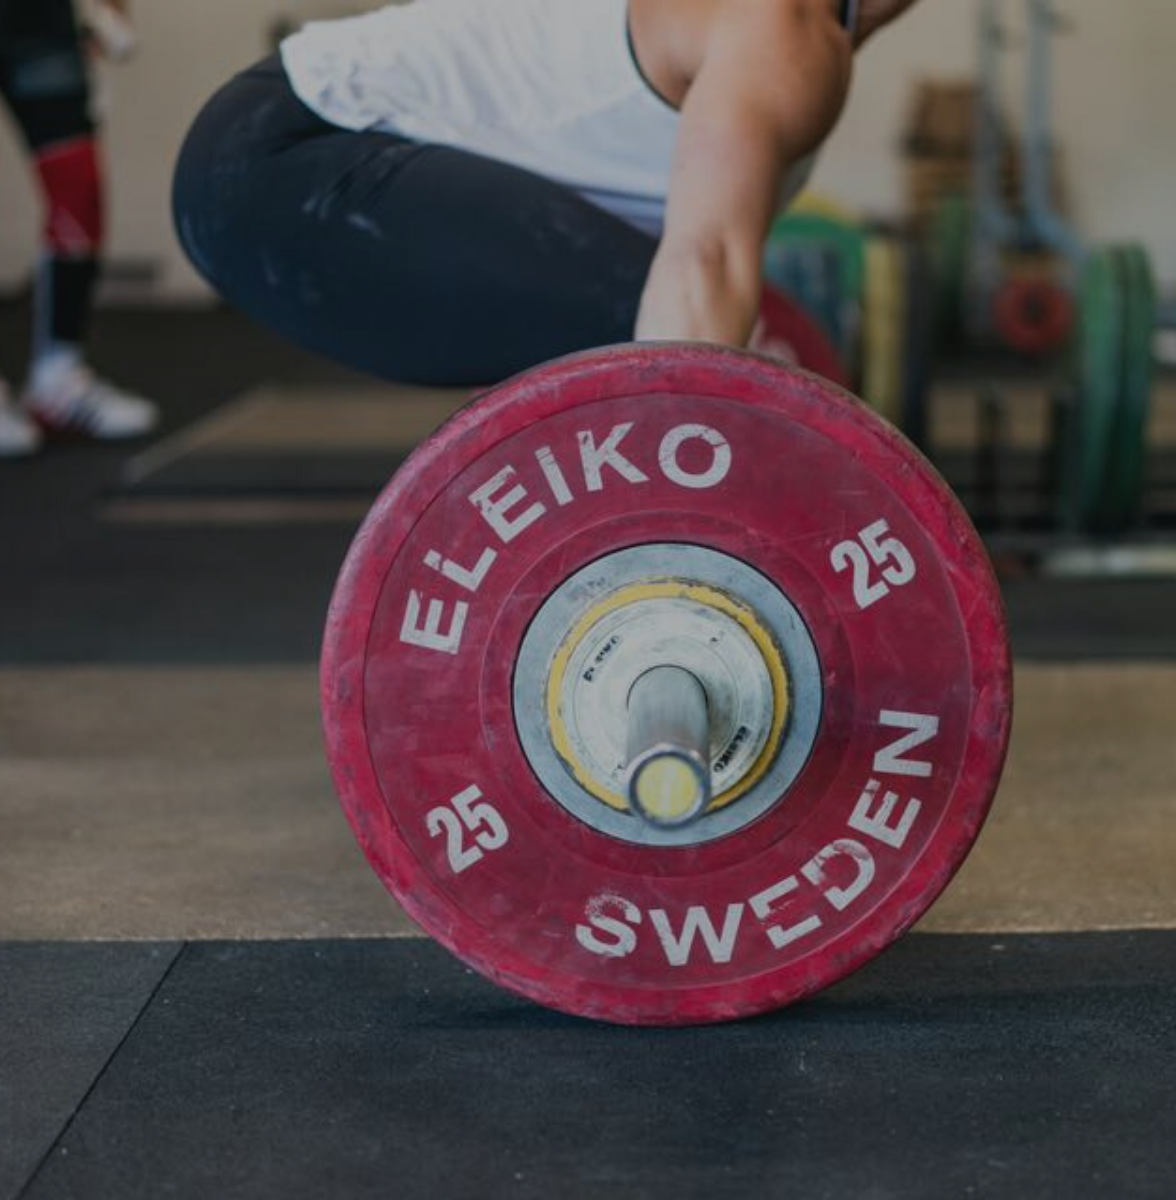 eleiko, olympic weightlifting, power clean, snatch, deadlift, athletics, armor, class, coaching, training